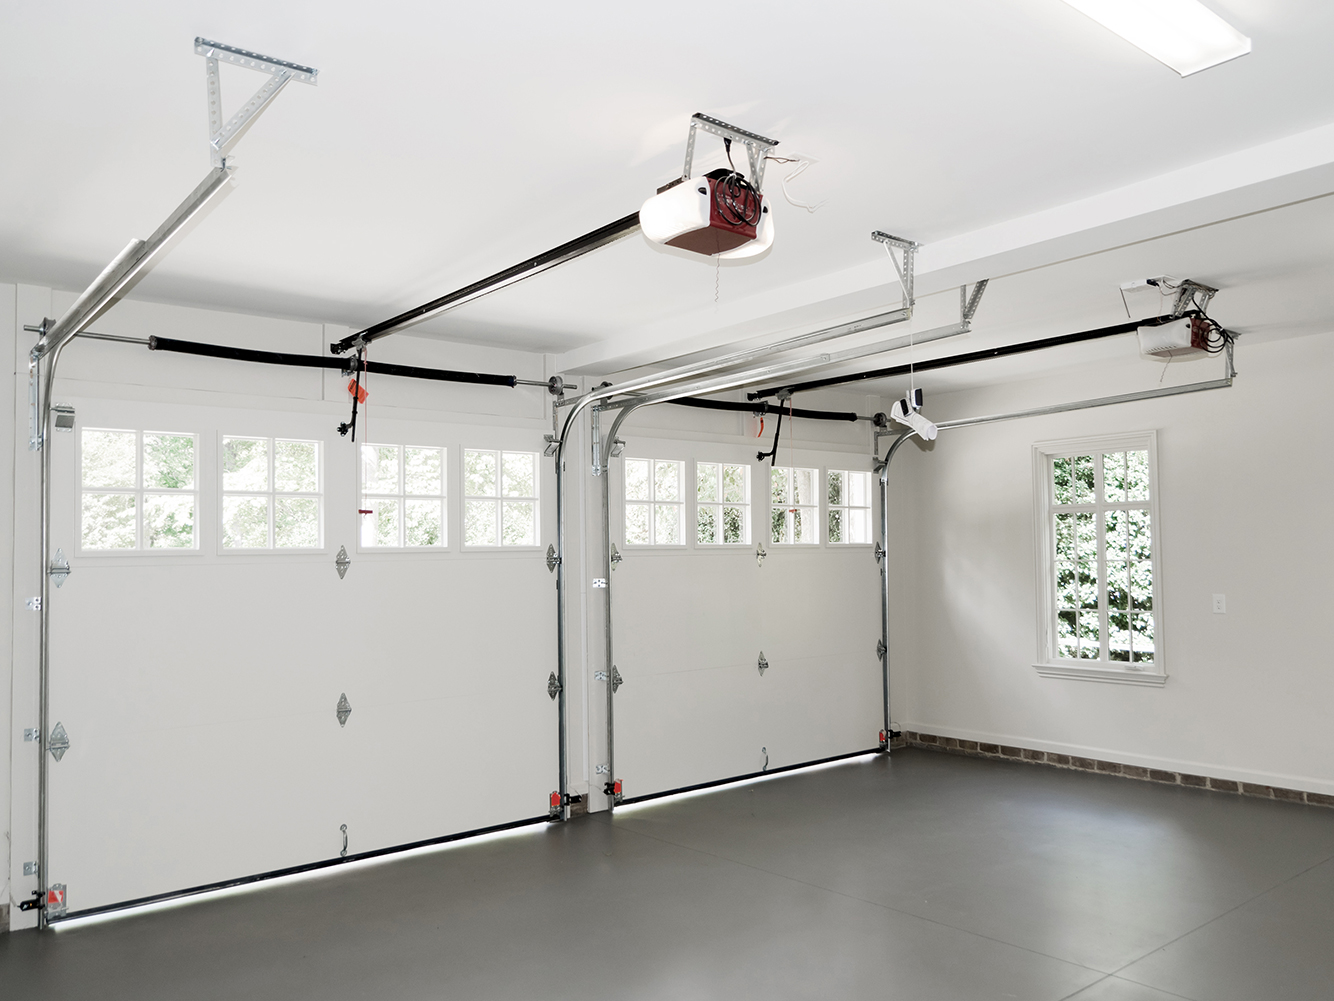 JDT Garage Door Service: Mesa, AZ: Garage Door Repair